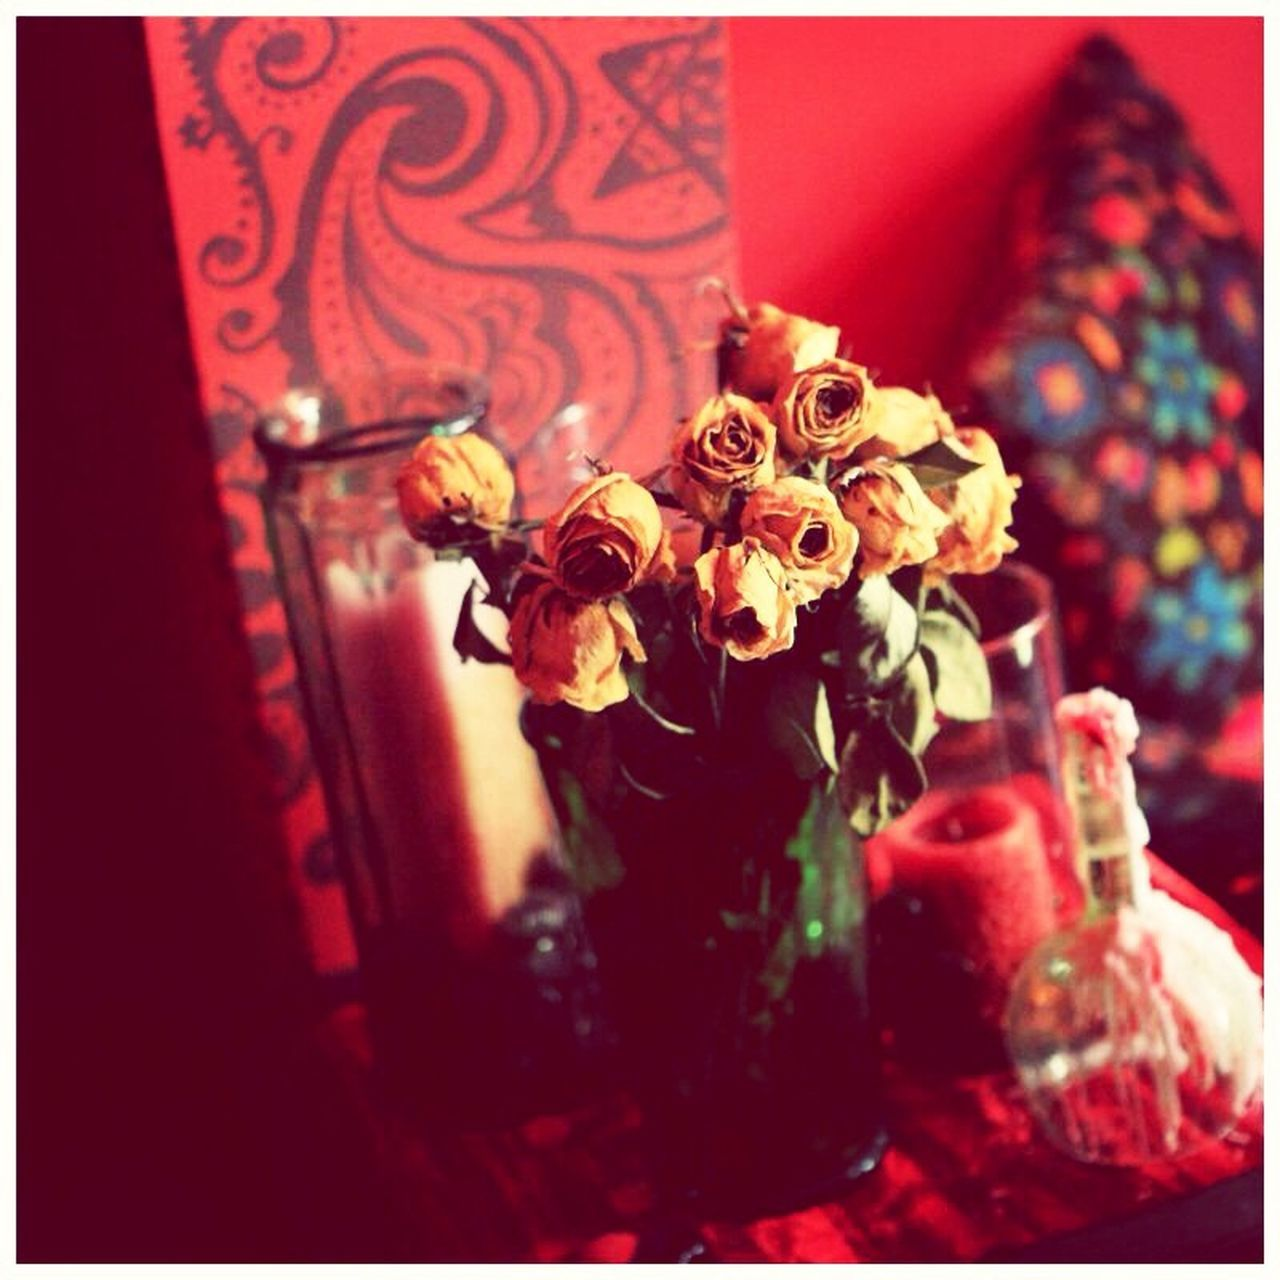 flower, indoors, close-up, vase, no people, table, rose - flower, petal, red, home interior, freshness, fragility, flower head, day